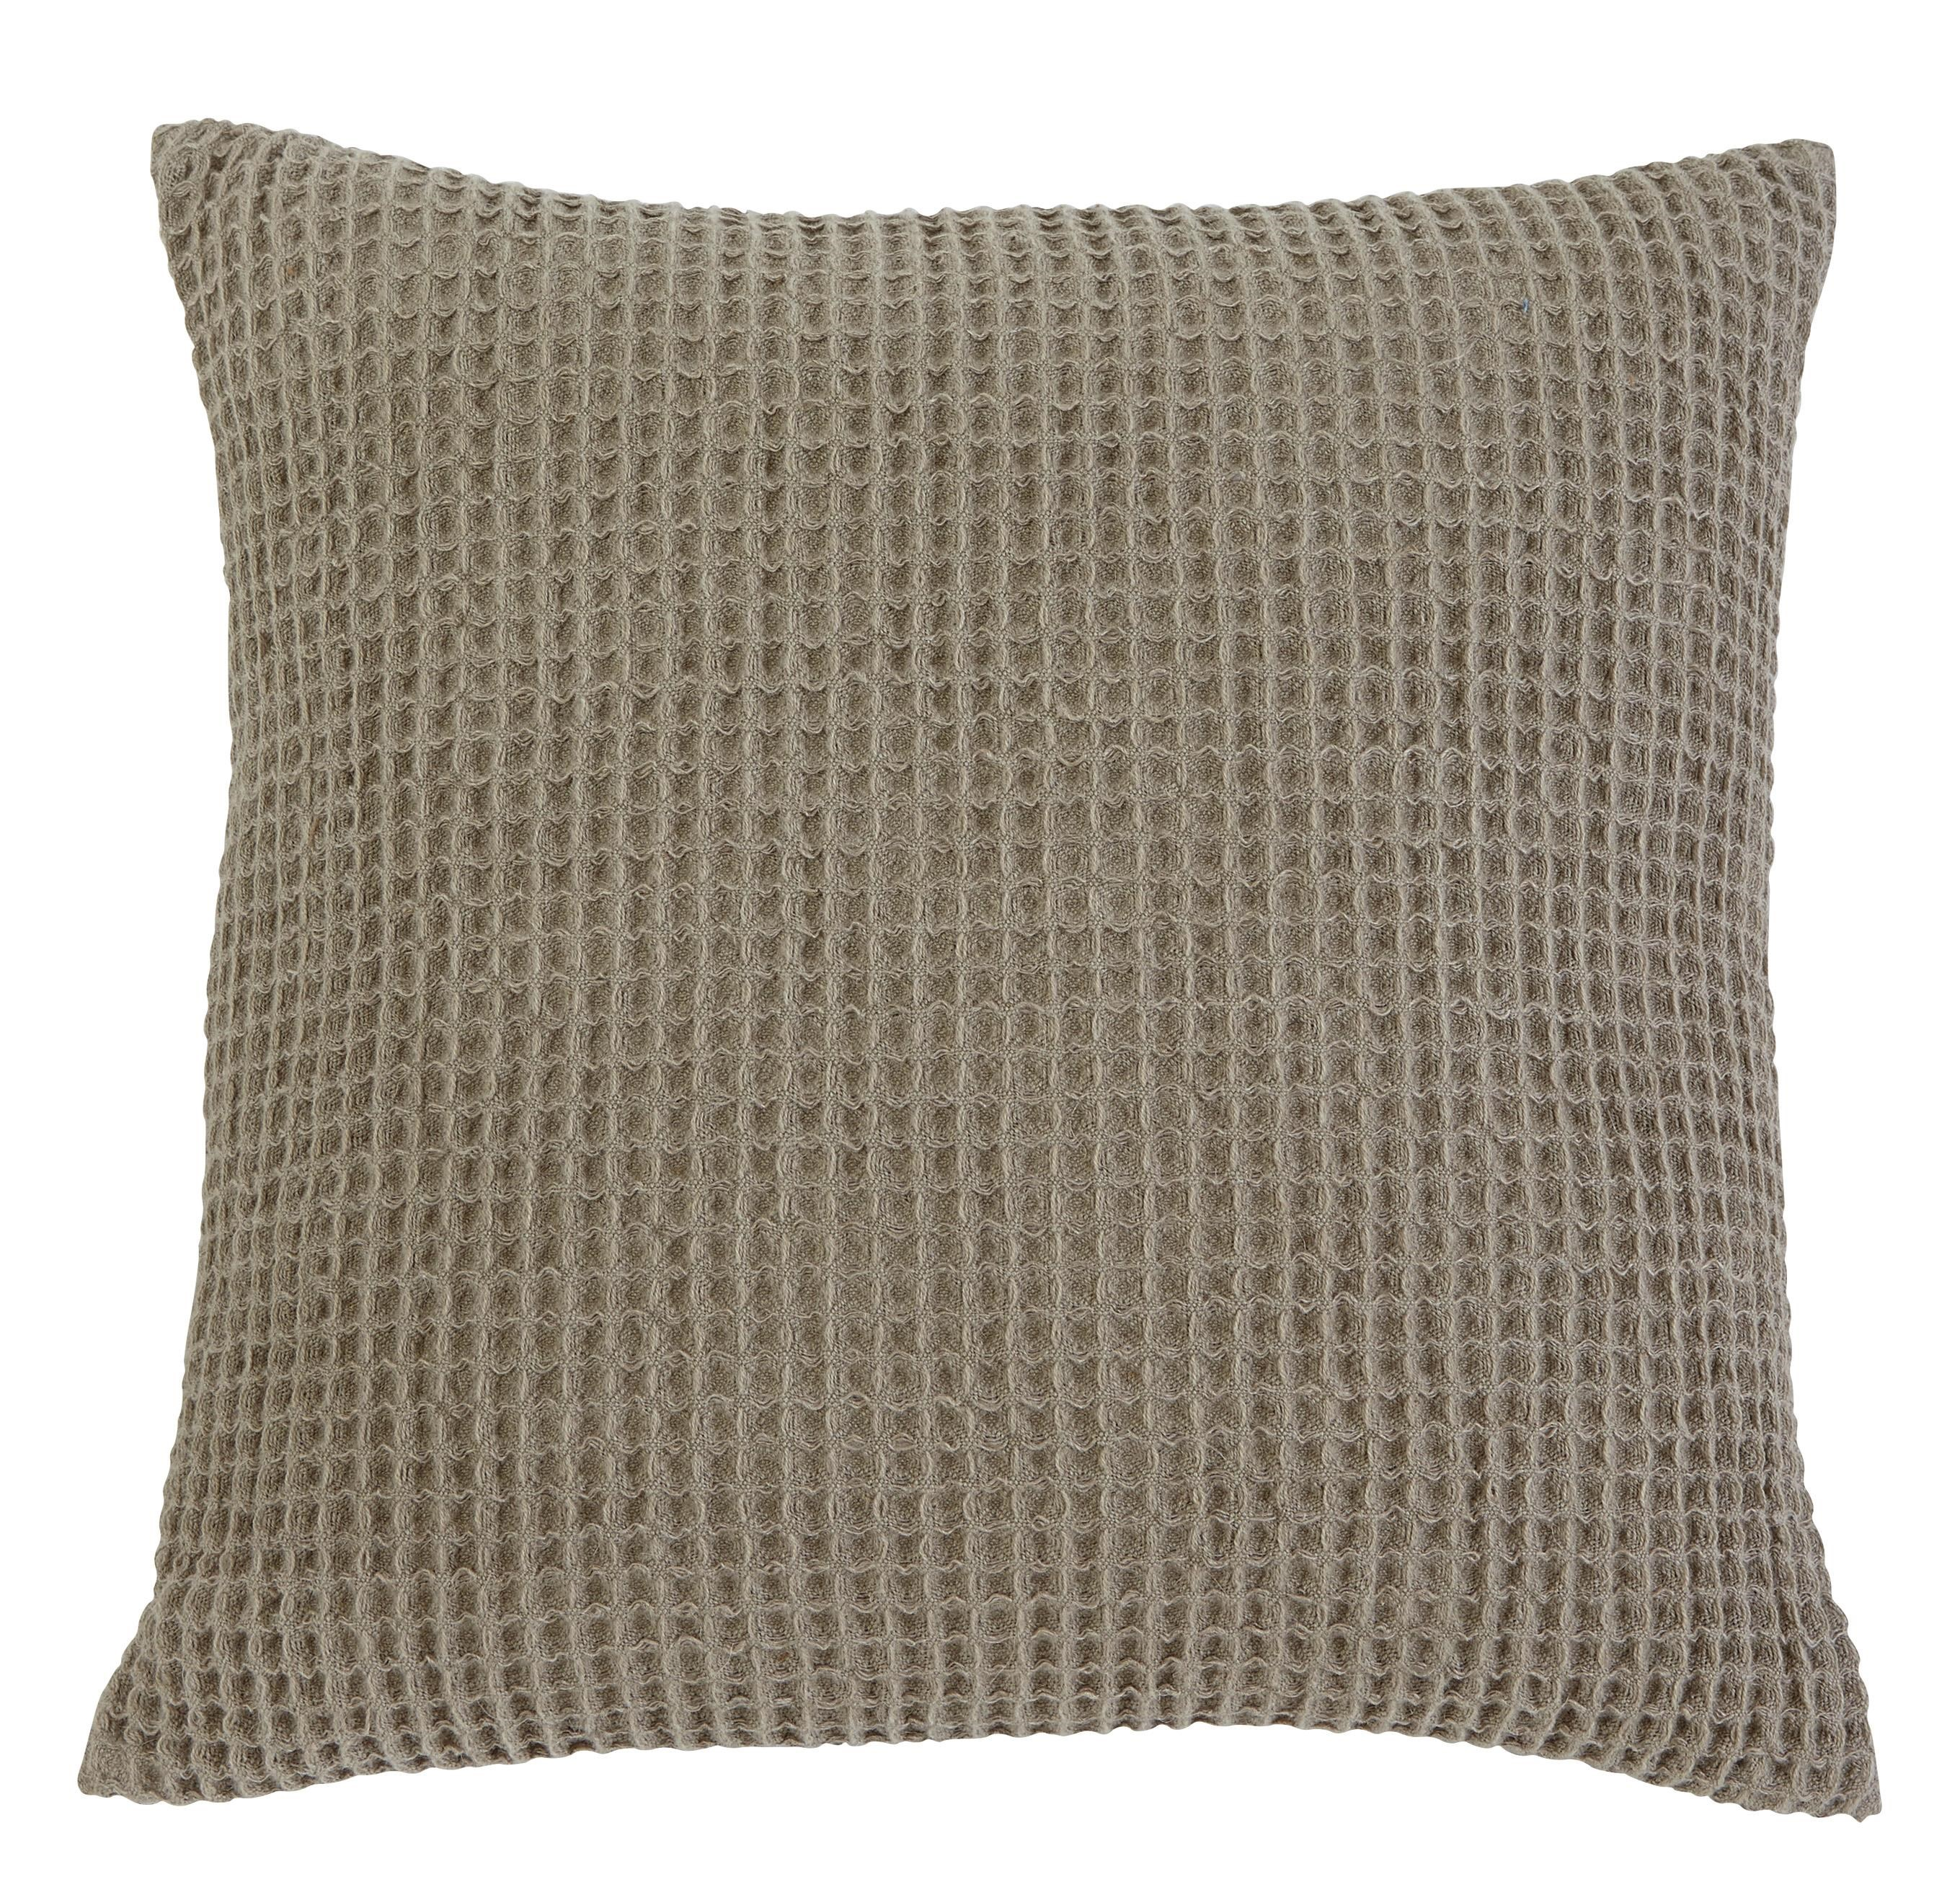 Signature Design by Ashley Furniture Pillows Patterned